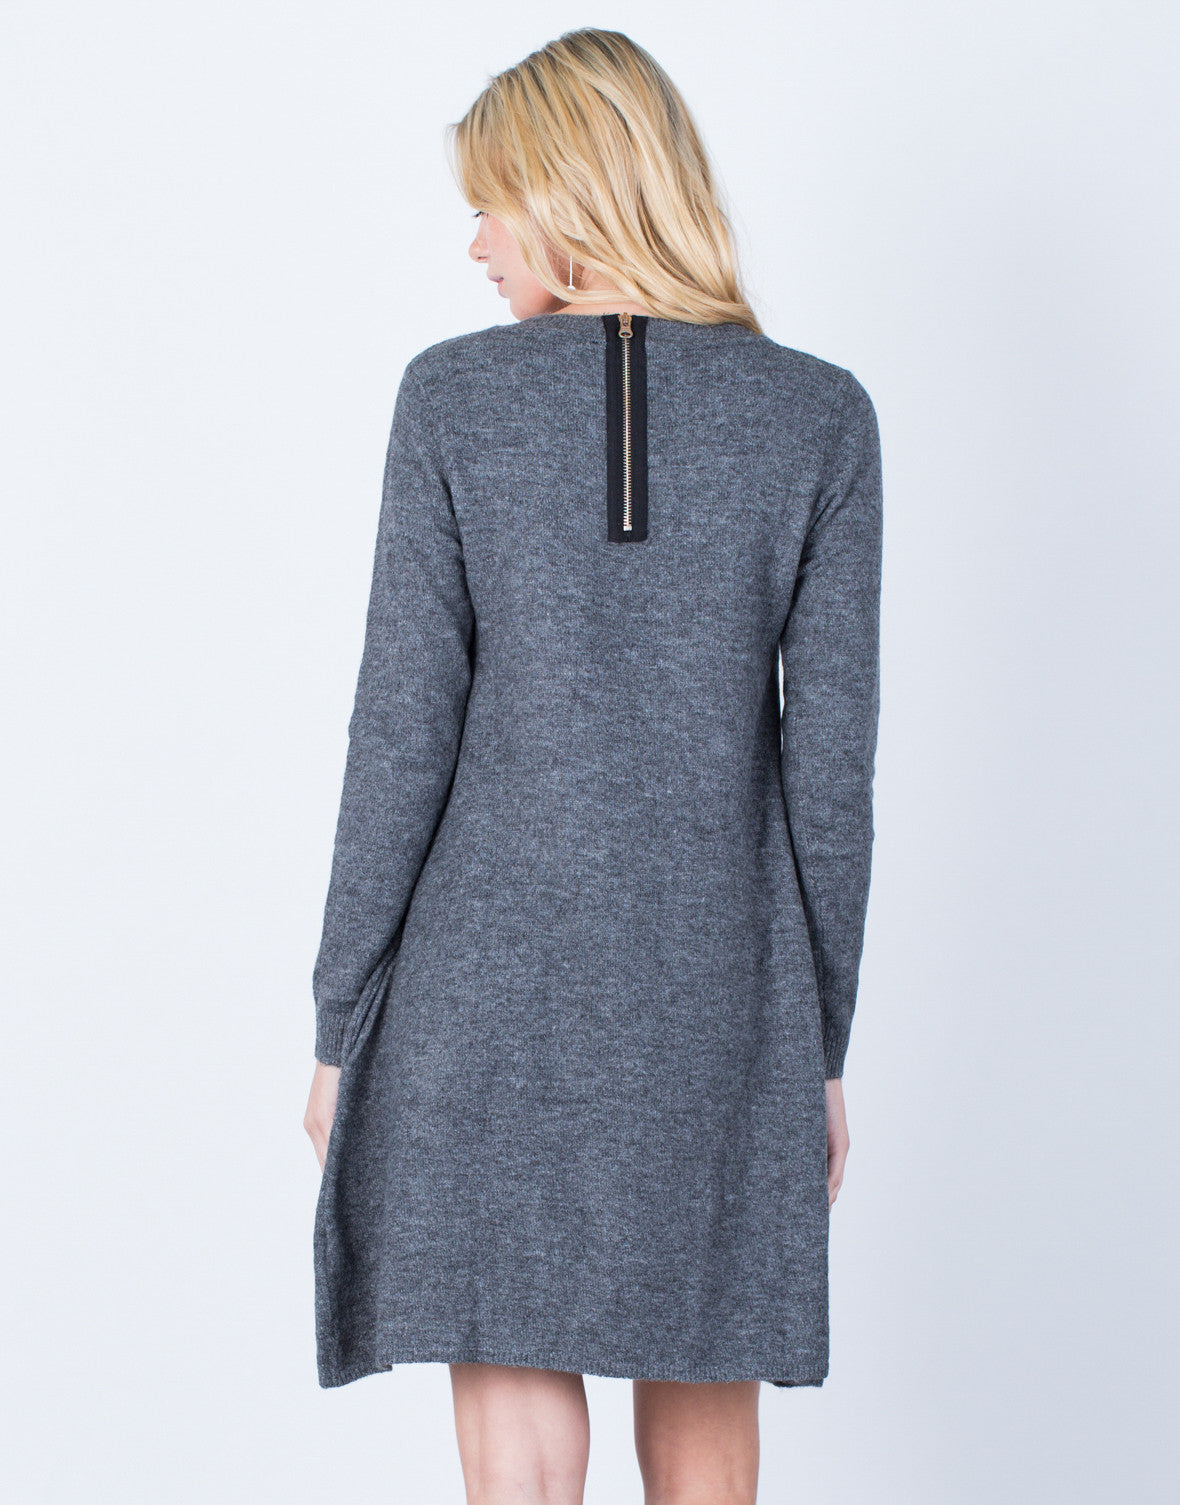 Back View of Fall into Comfort Sweater Dress